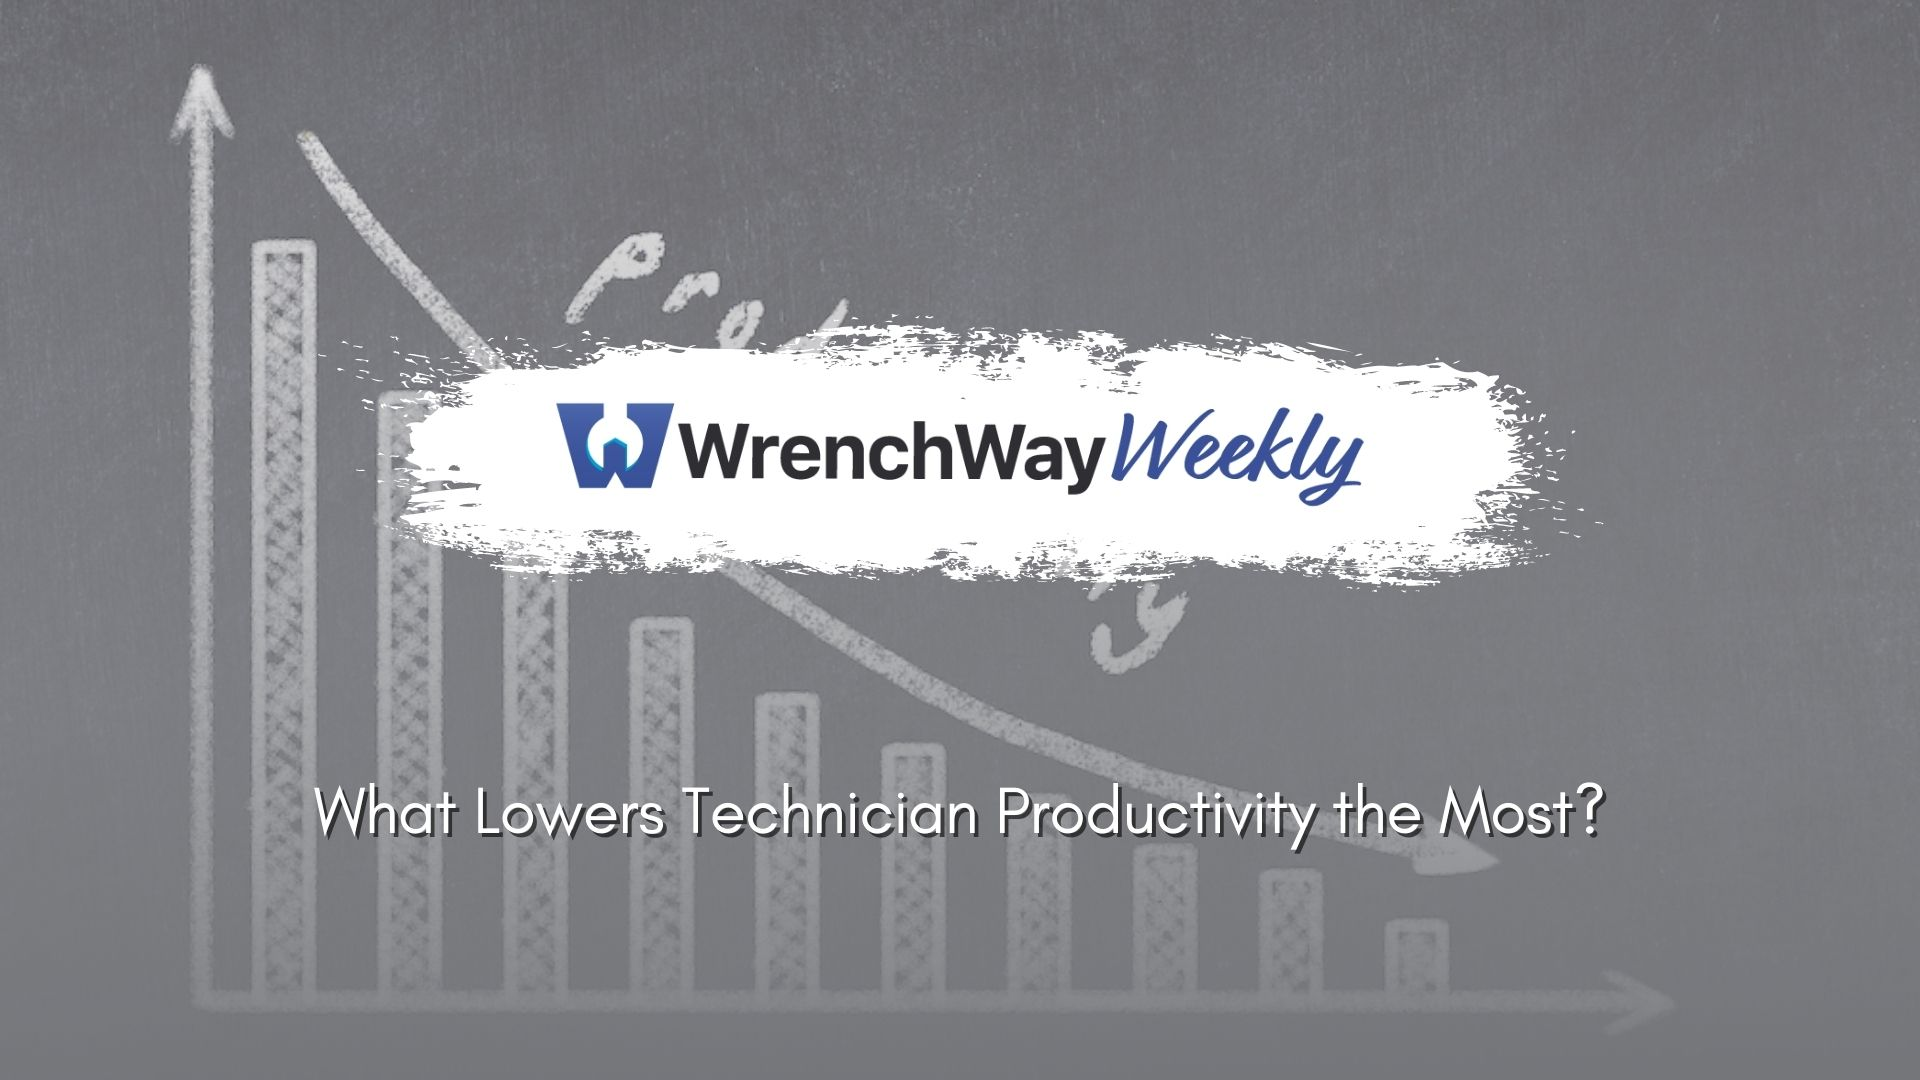 wrenchway weekly technician productivity